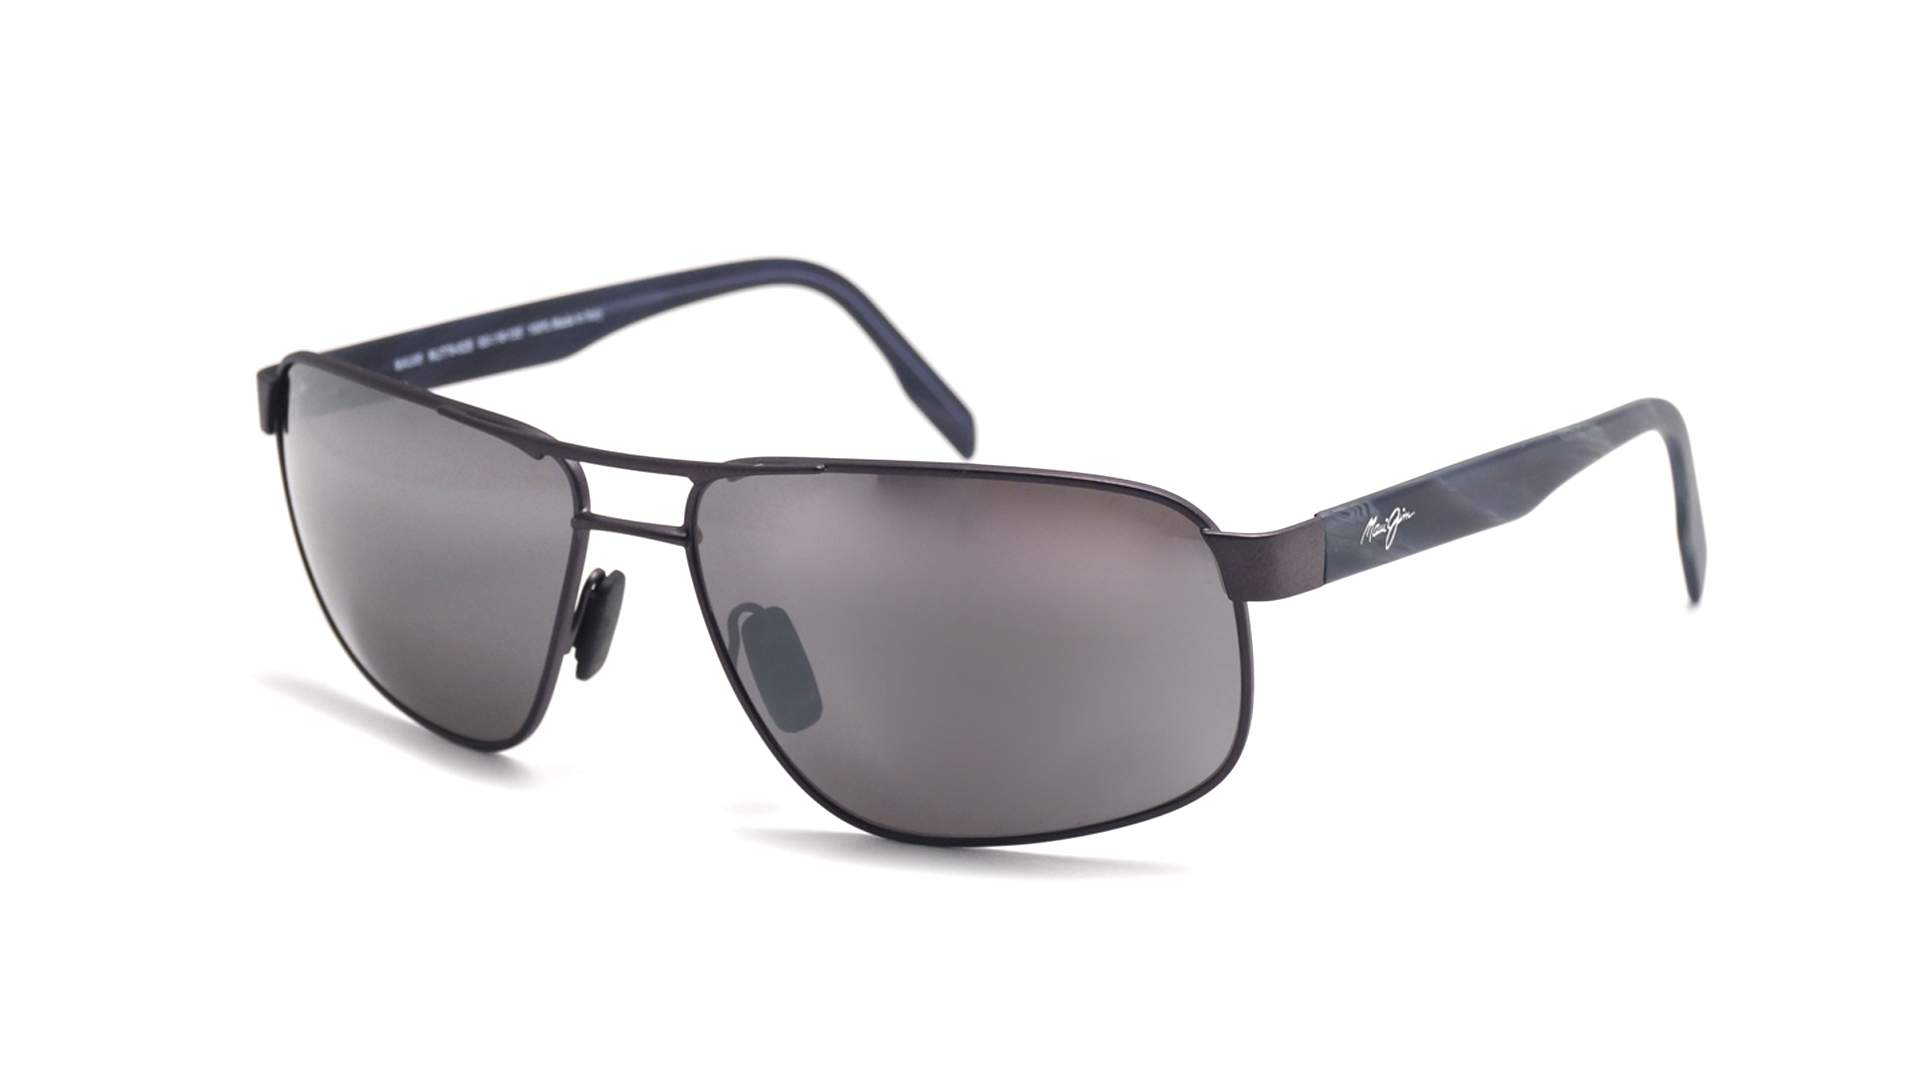 5ae9ba71b2 Sunglasses Maui Jim Whitehaven Black Matte Minéral superthin 776-02S 63-16  Large Polarized